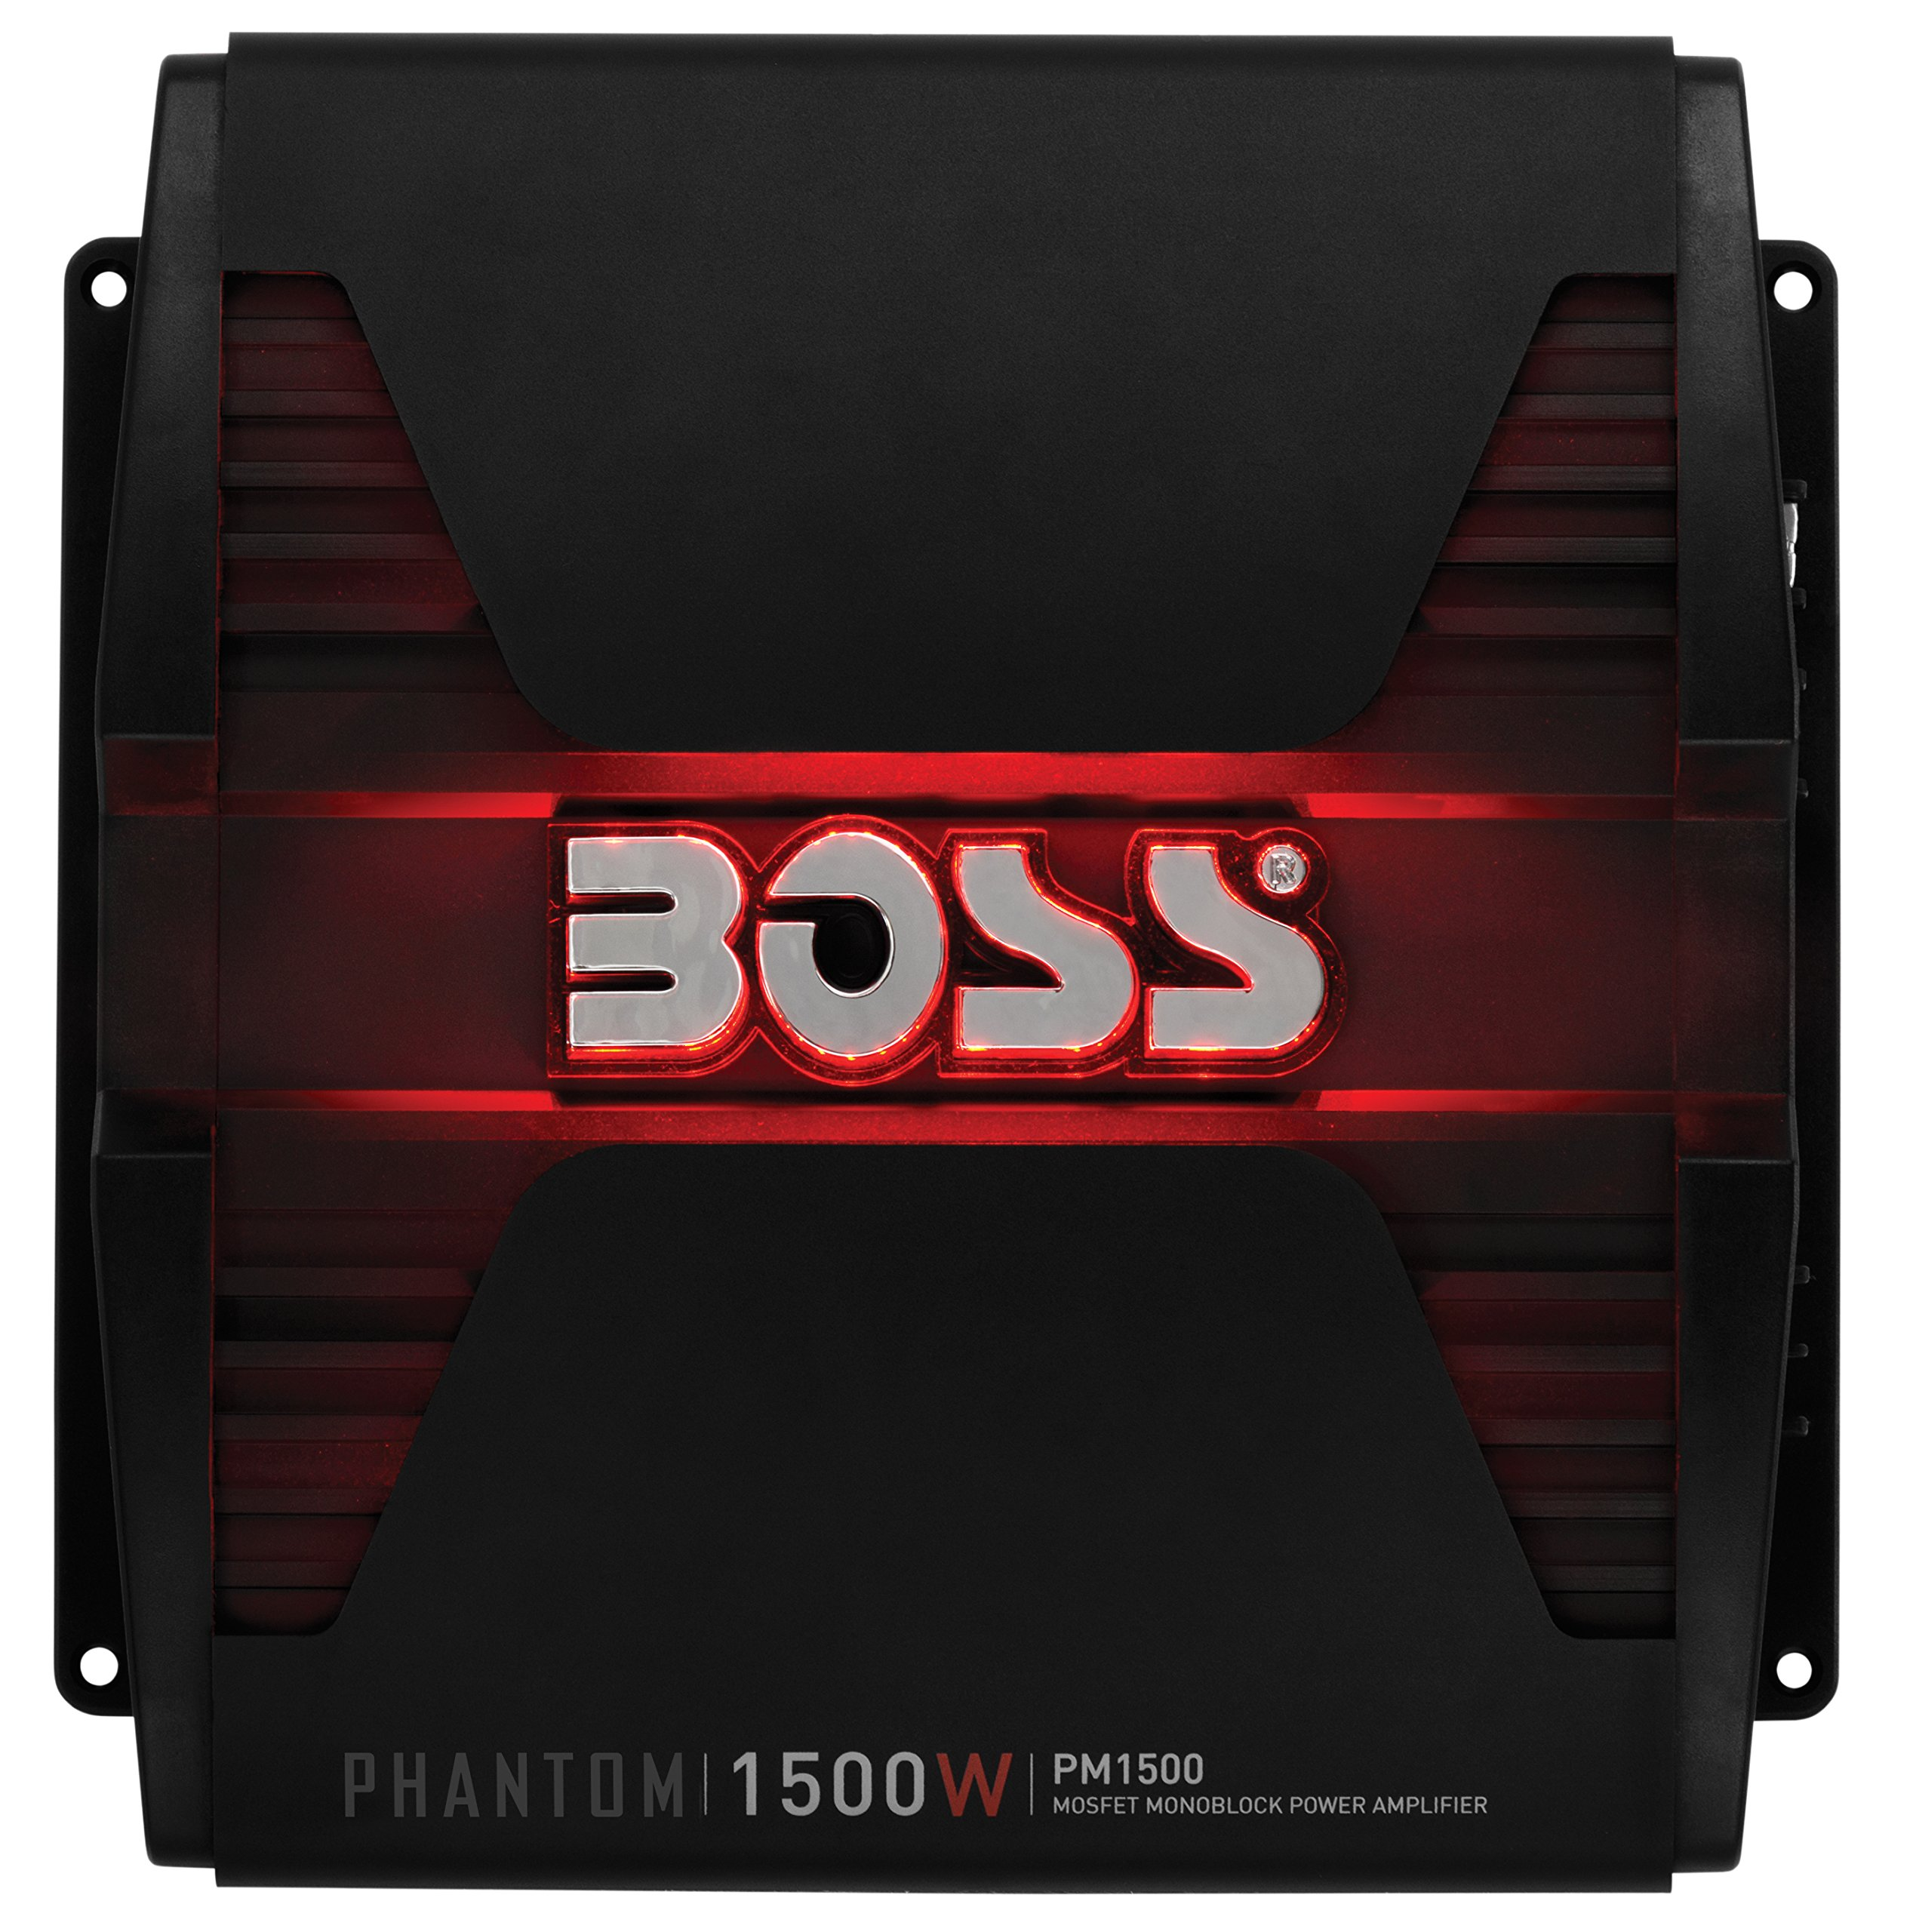 BOSS Audio PM1500 - Phantom 1500 Watt, 2/4 Ohm Stable Class A/B, Monoblock, Mosfet Car Amplifier with Remote Subwoofer Control